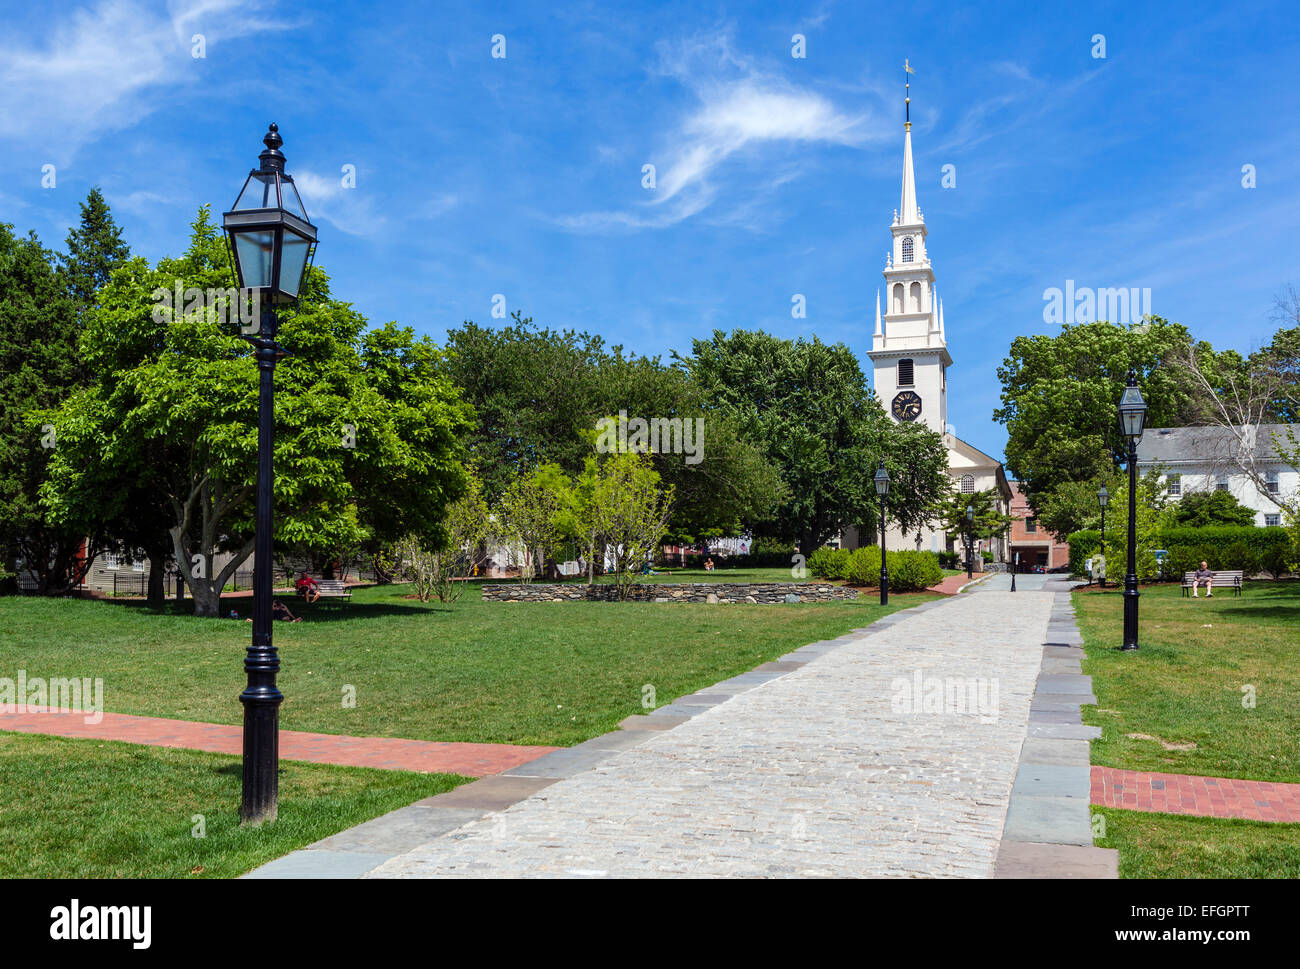 The early 18thC Trinity Church from Trinity Park, Queen Ann Square, Newport, Rhode Island, USA - Stock Image